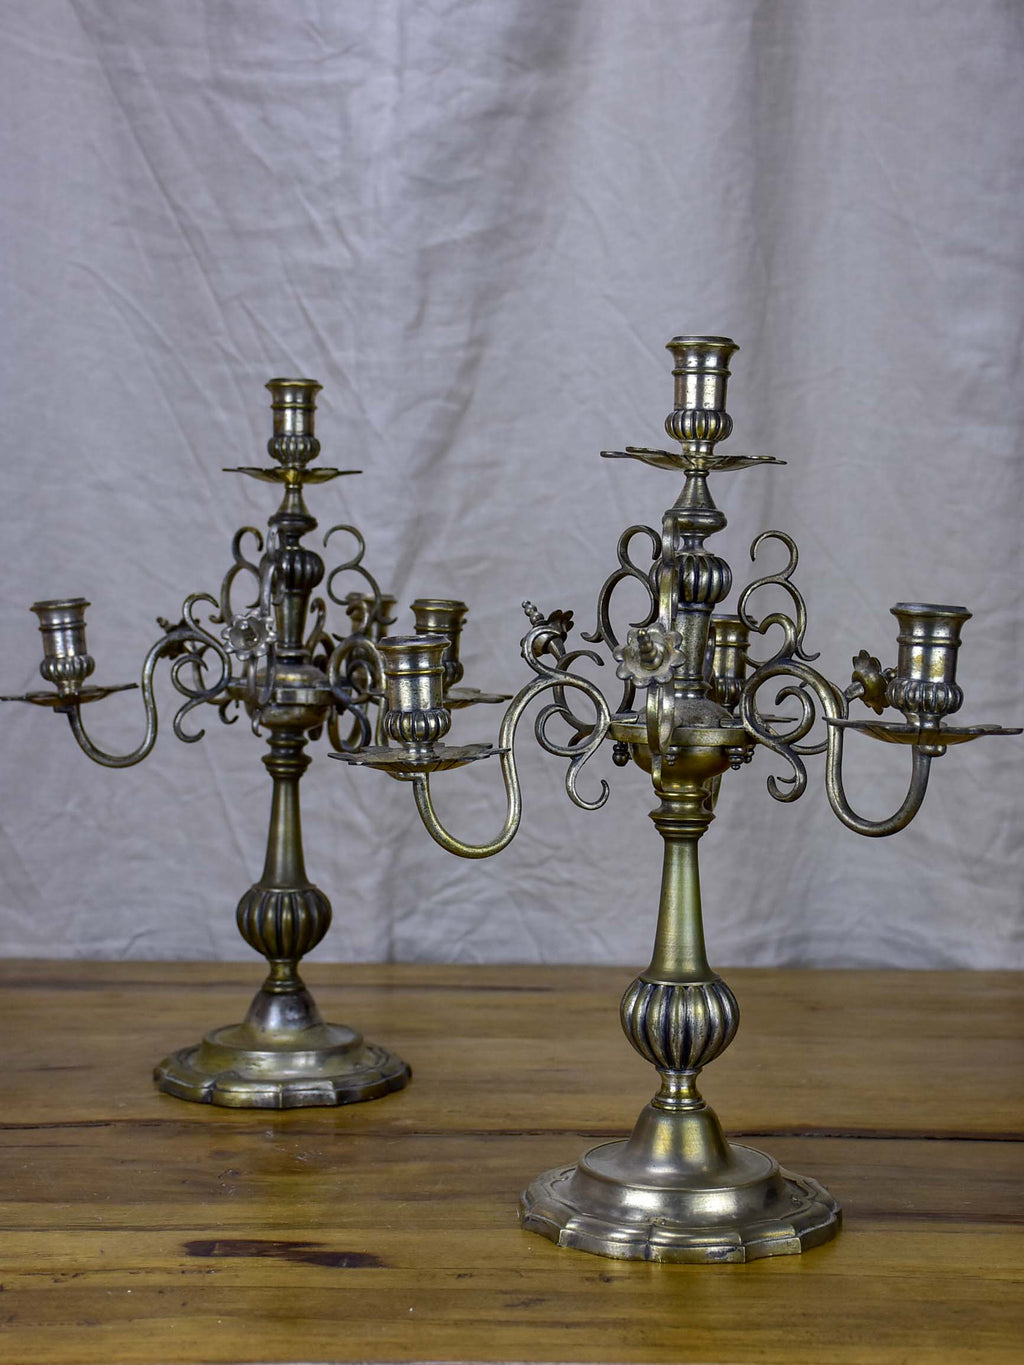 Pair of rustic late 19th Century candlesticks - 4 candles